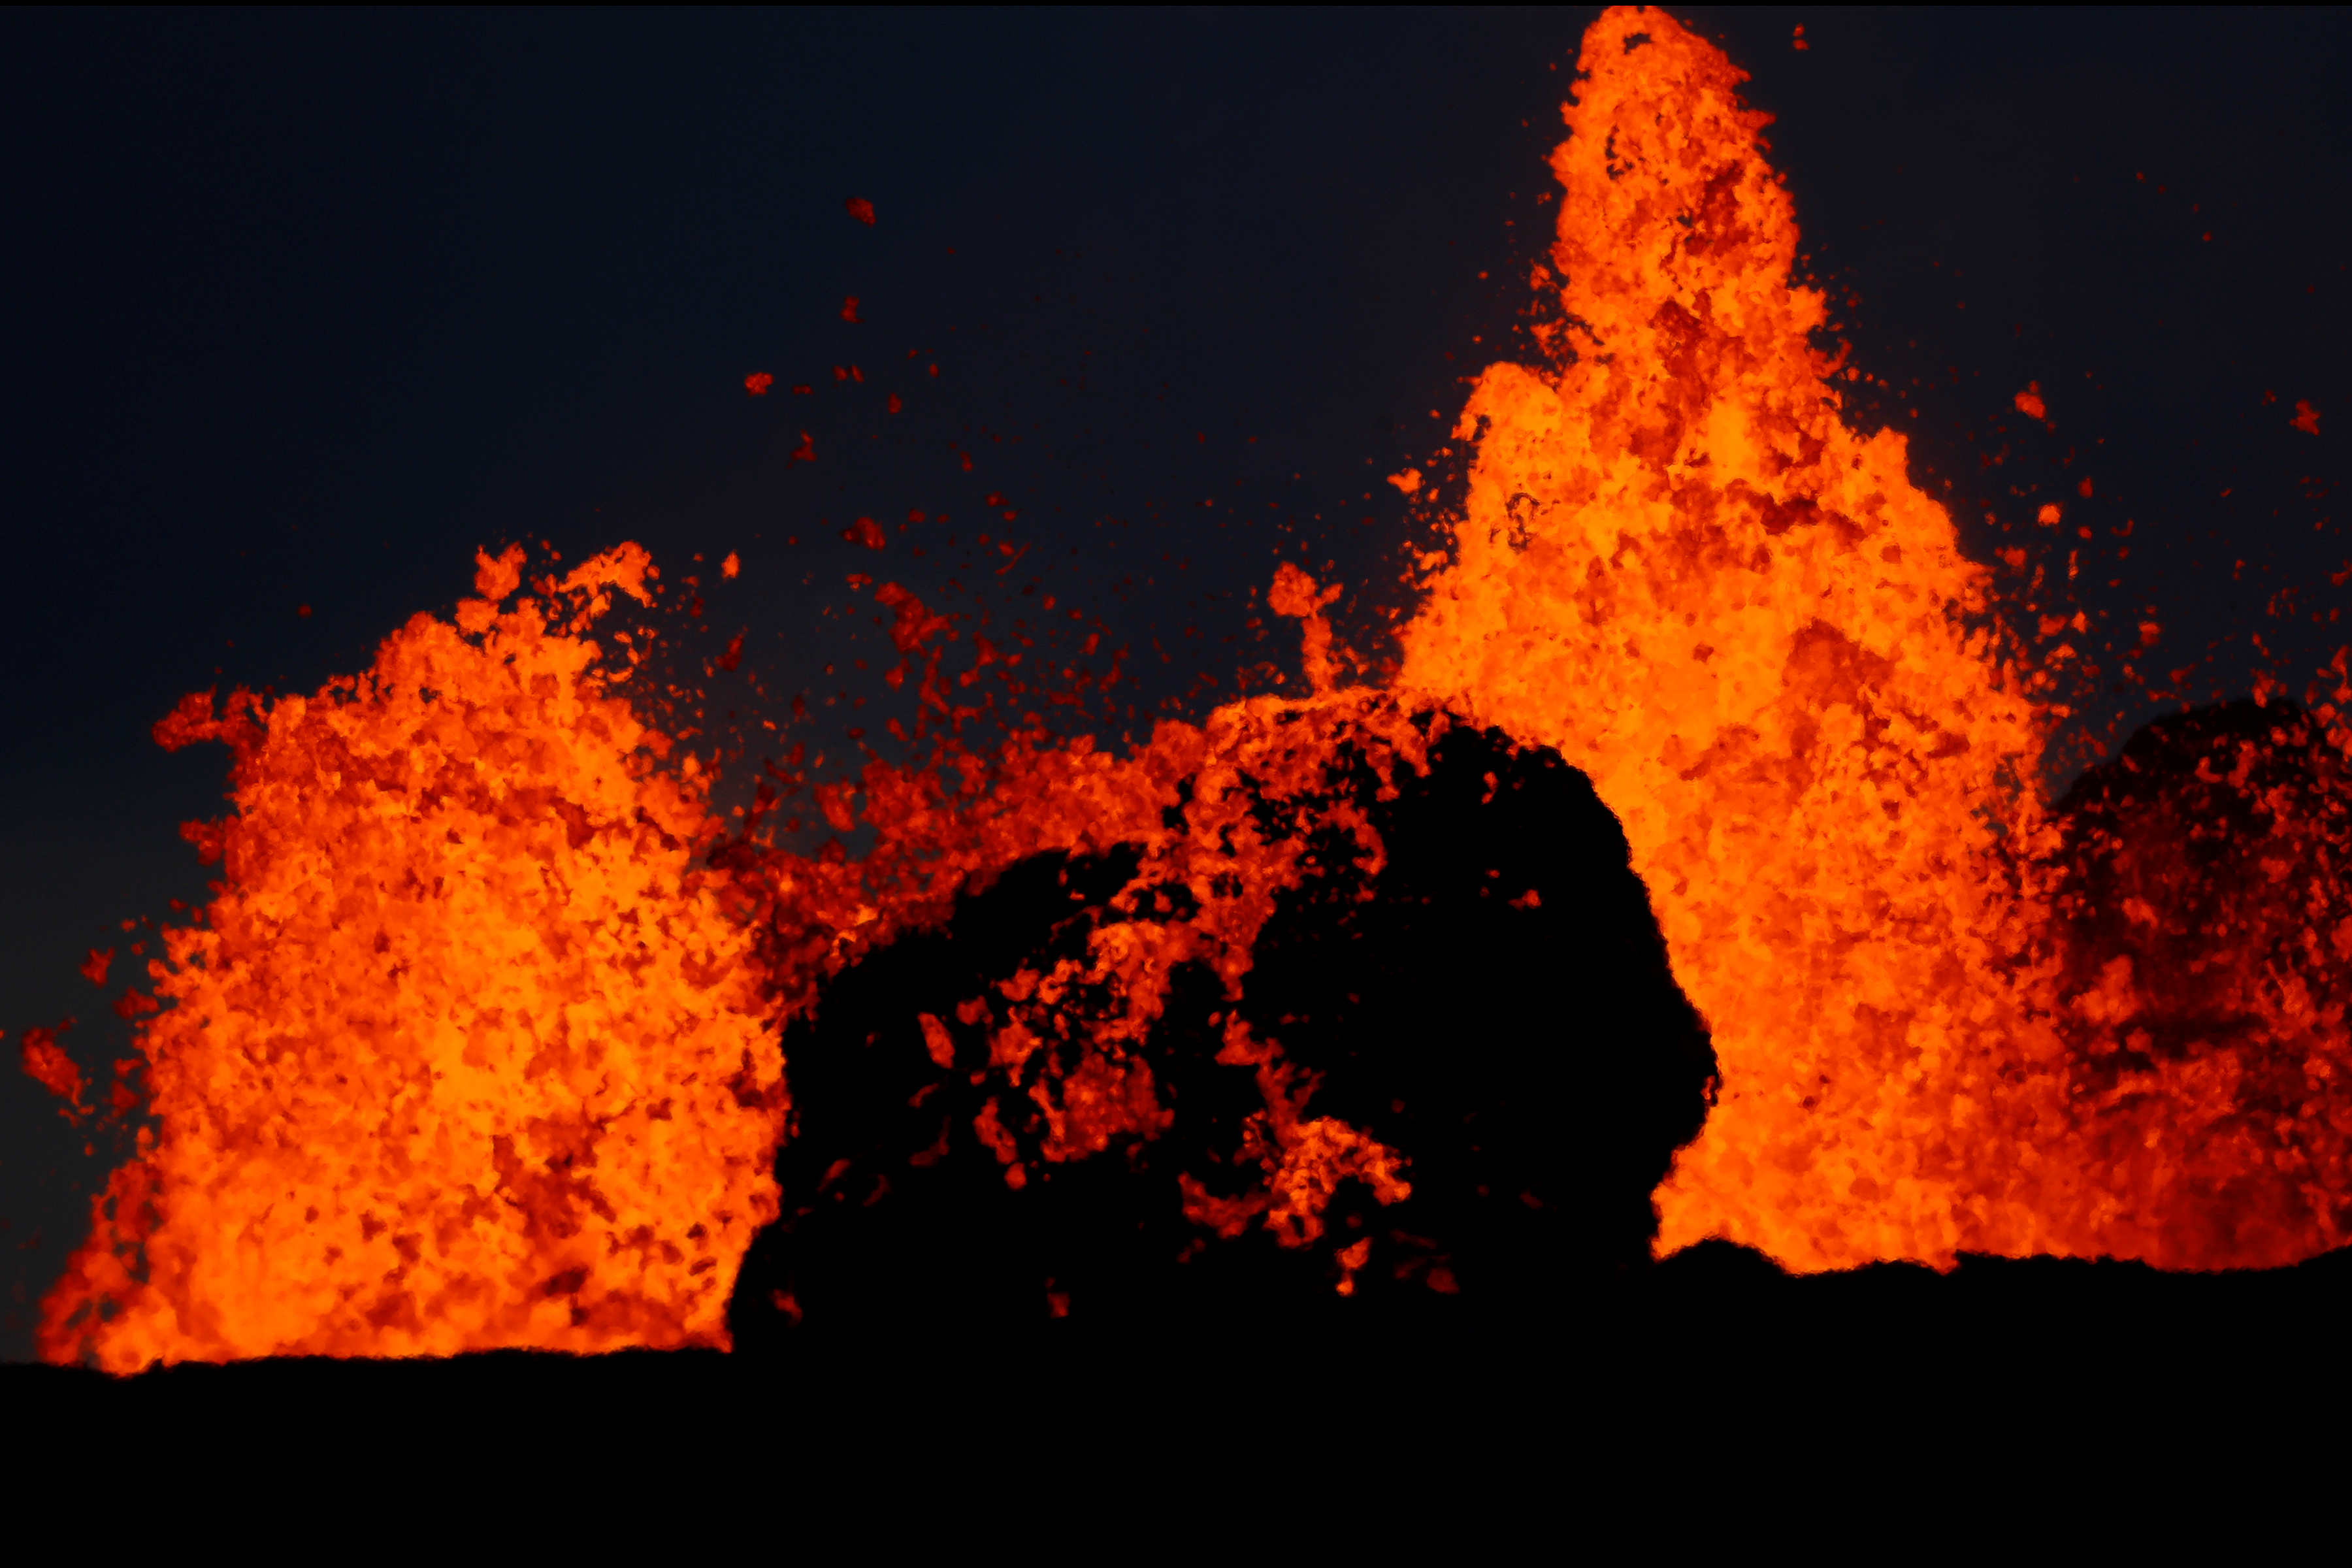 Lava from the Kilauea volcano shoots out of a fissure, in the Leilani Estates near Pahoa, May 26, 2018. REUTERS/Marco Garci